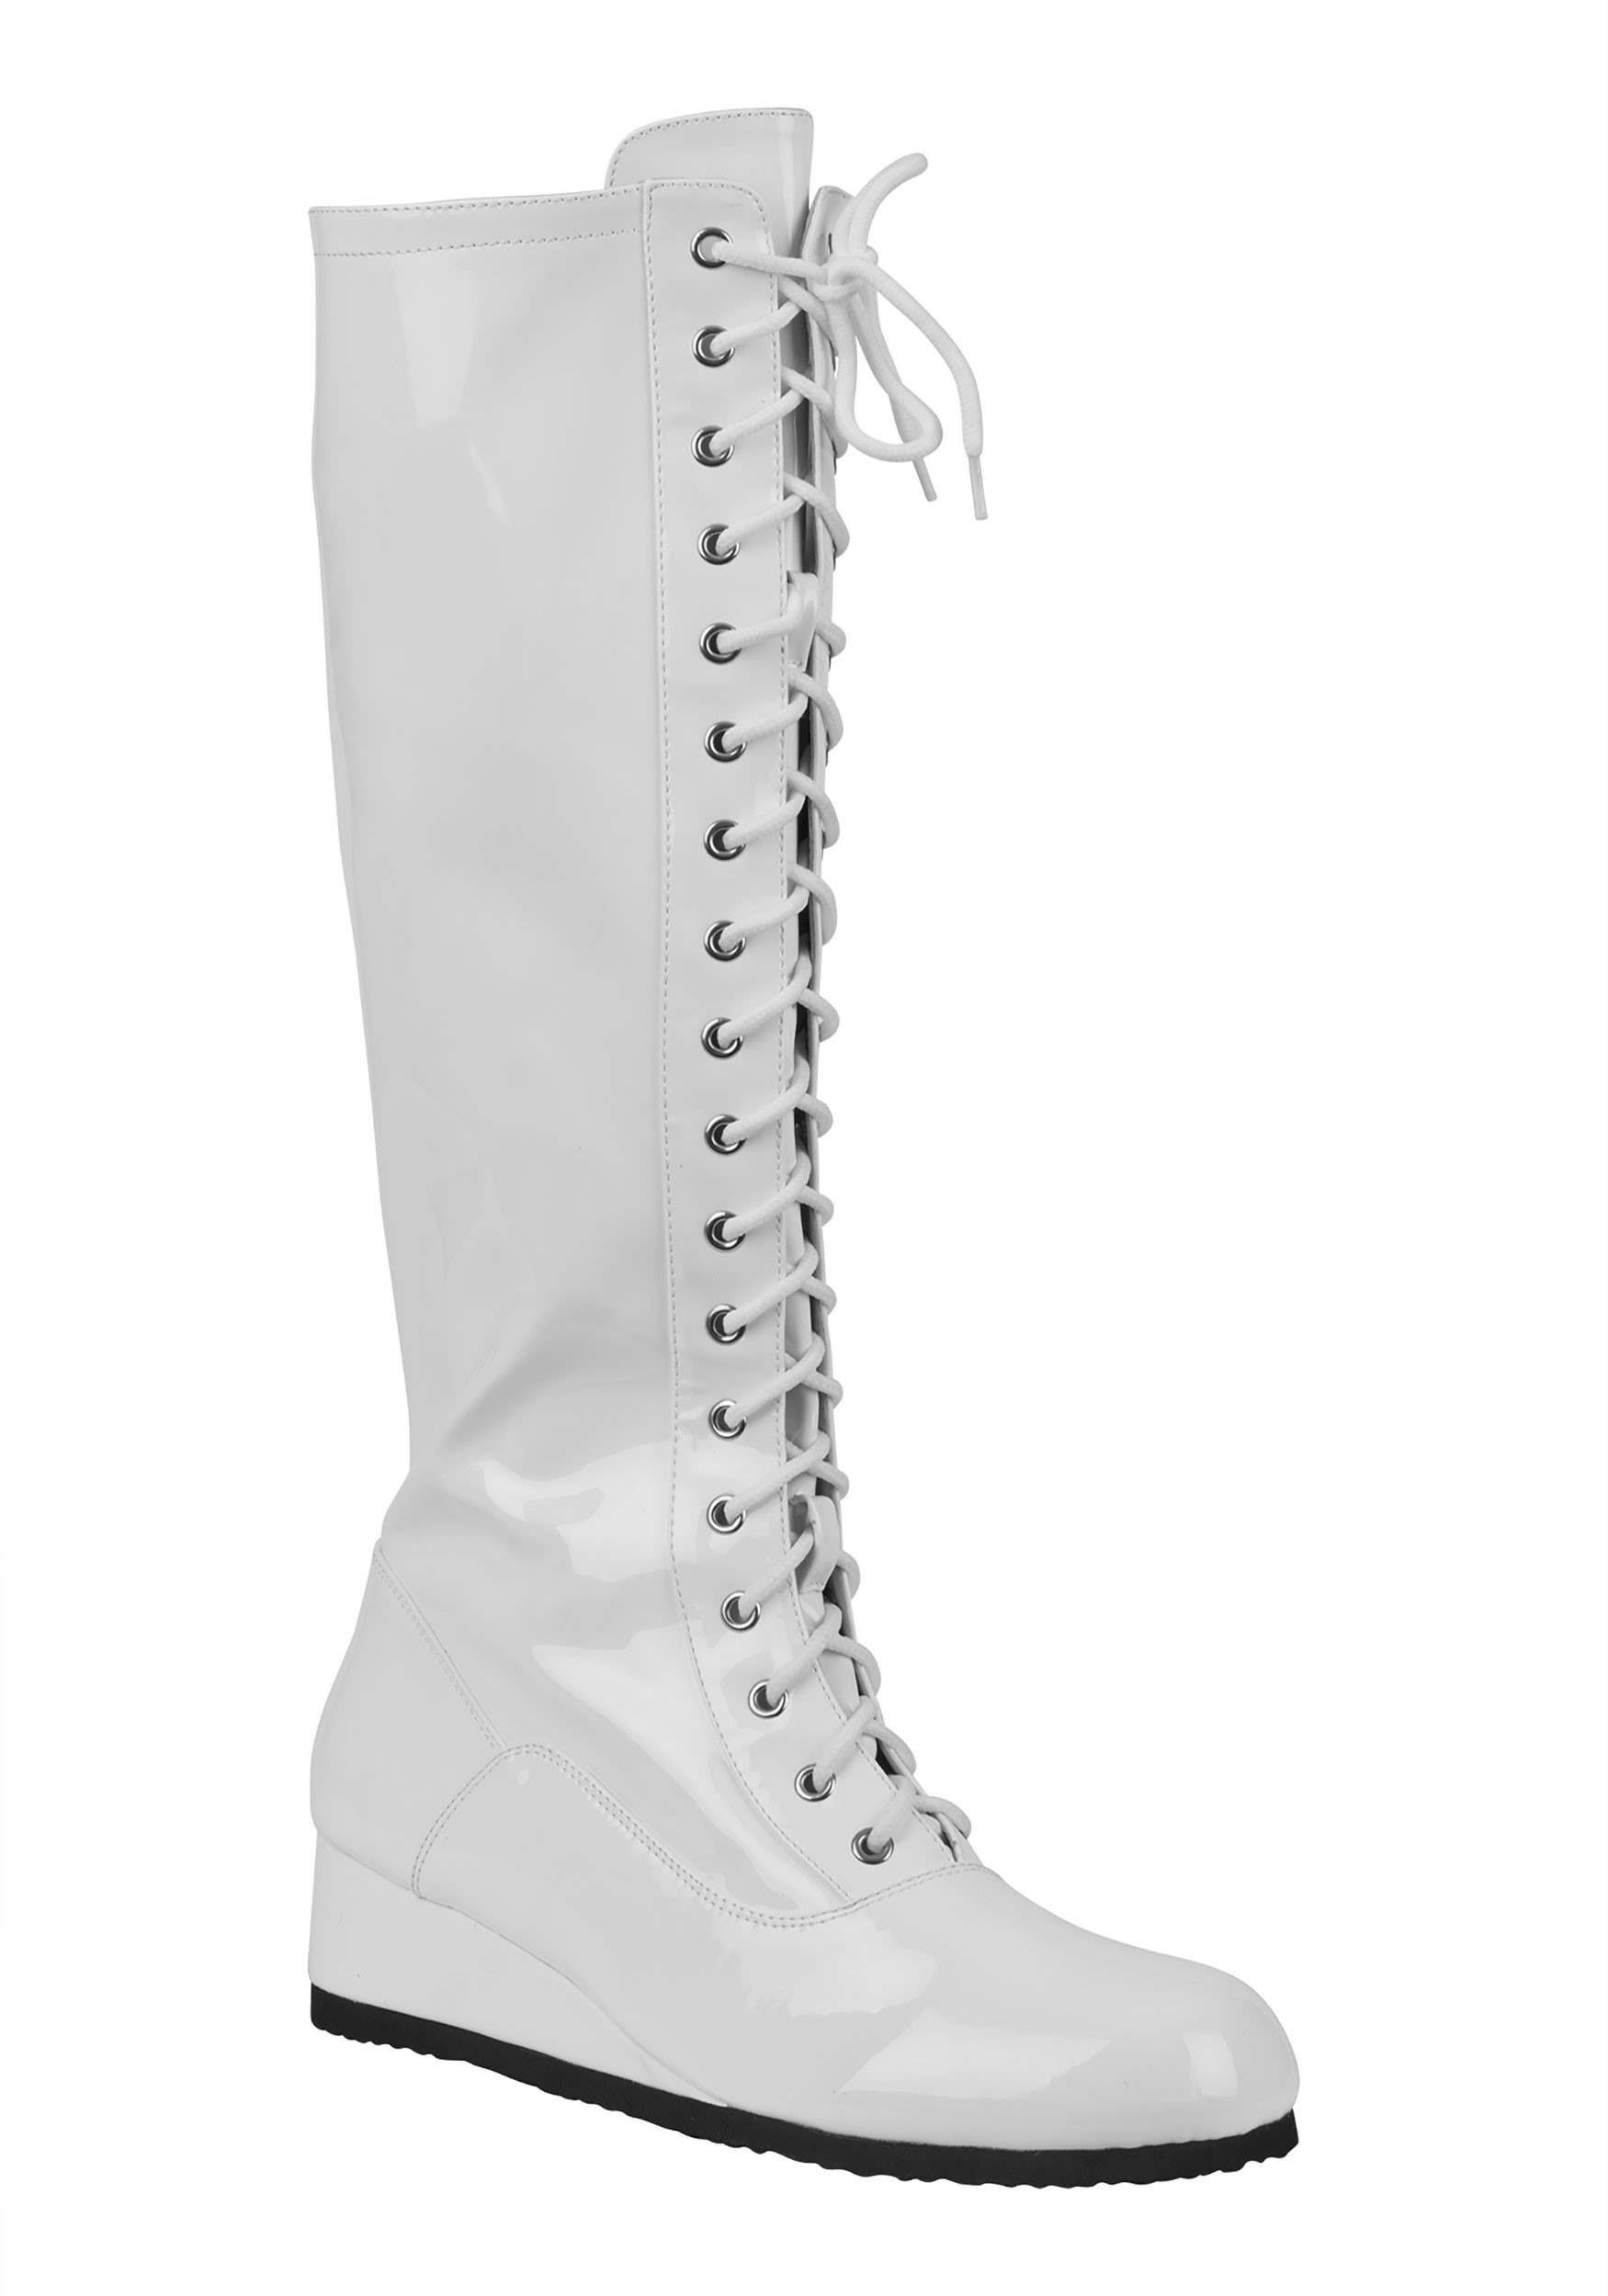 White Wrestling Boots for Men